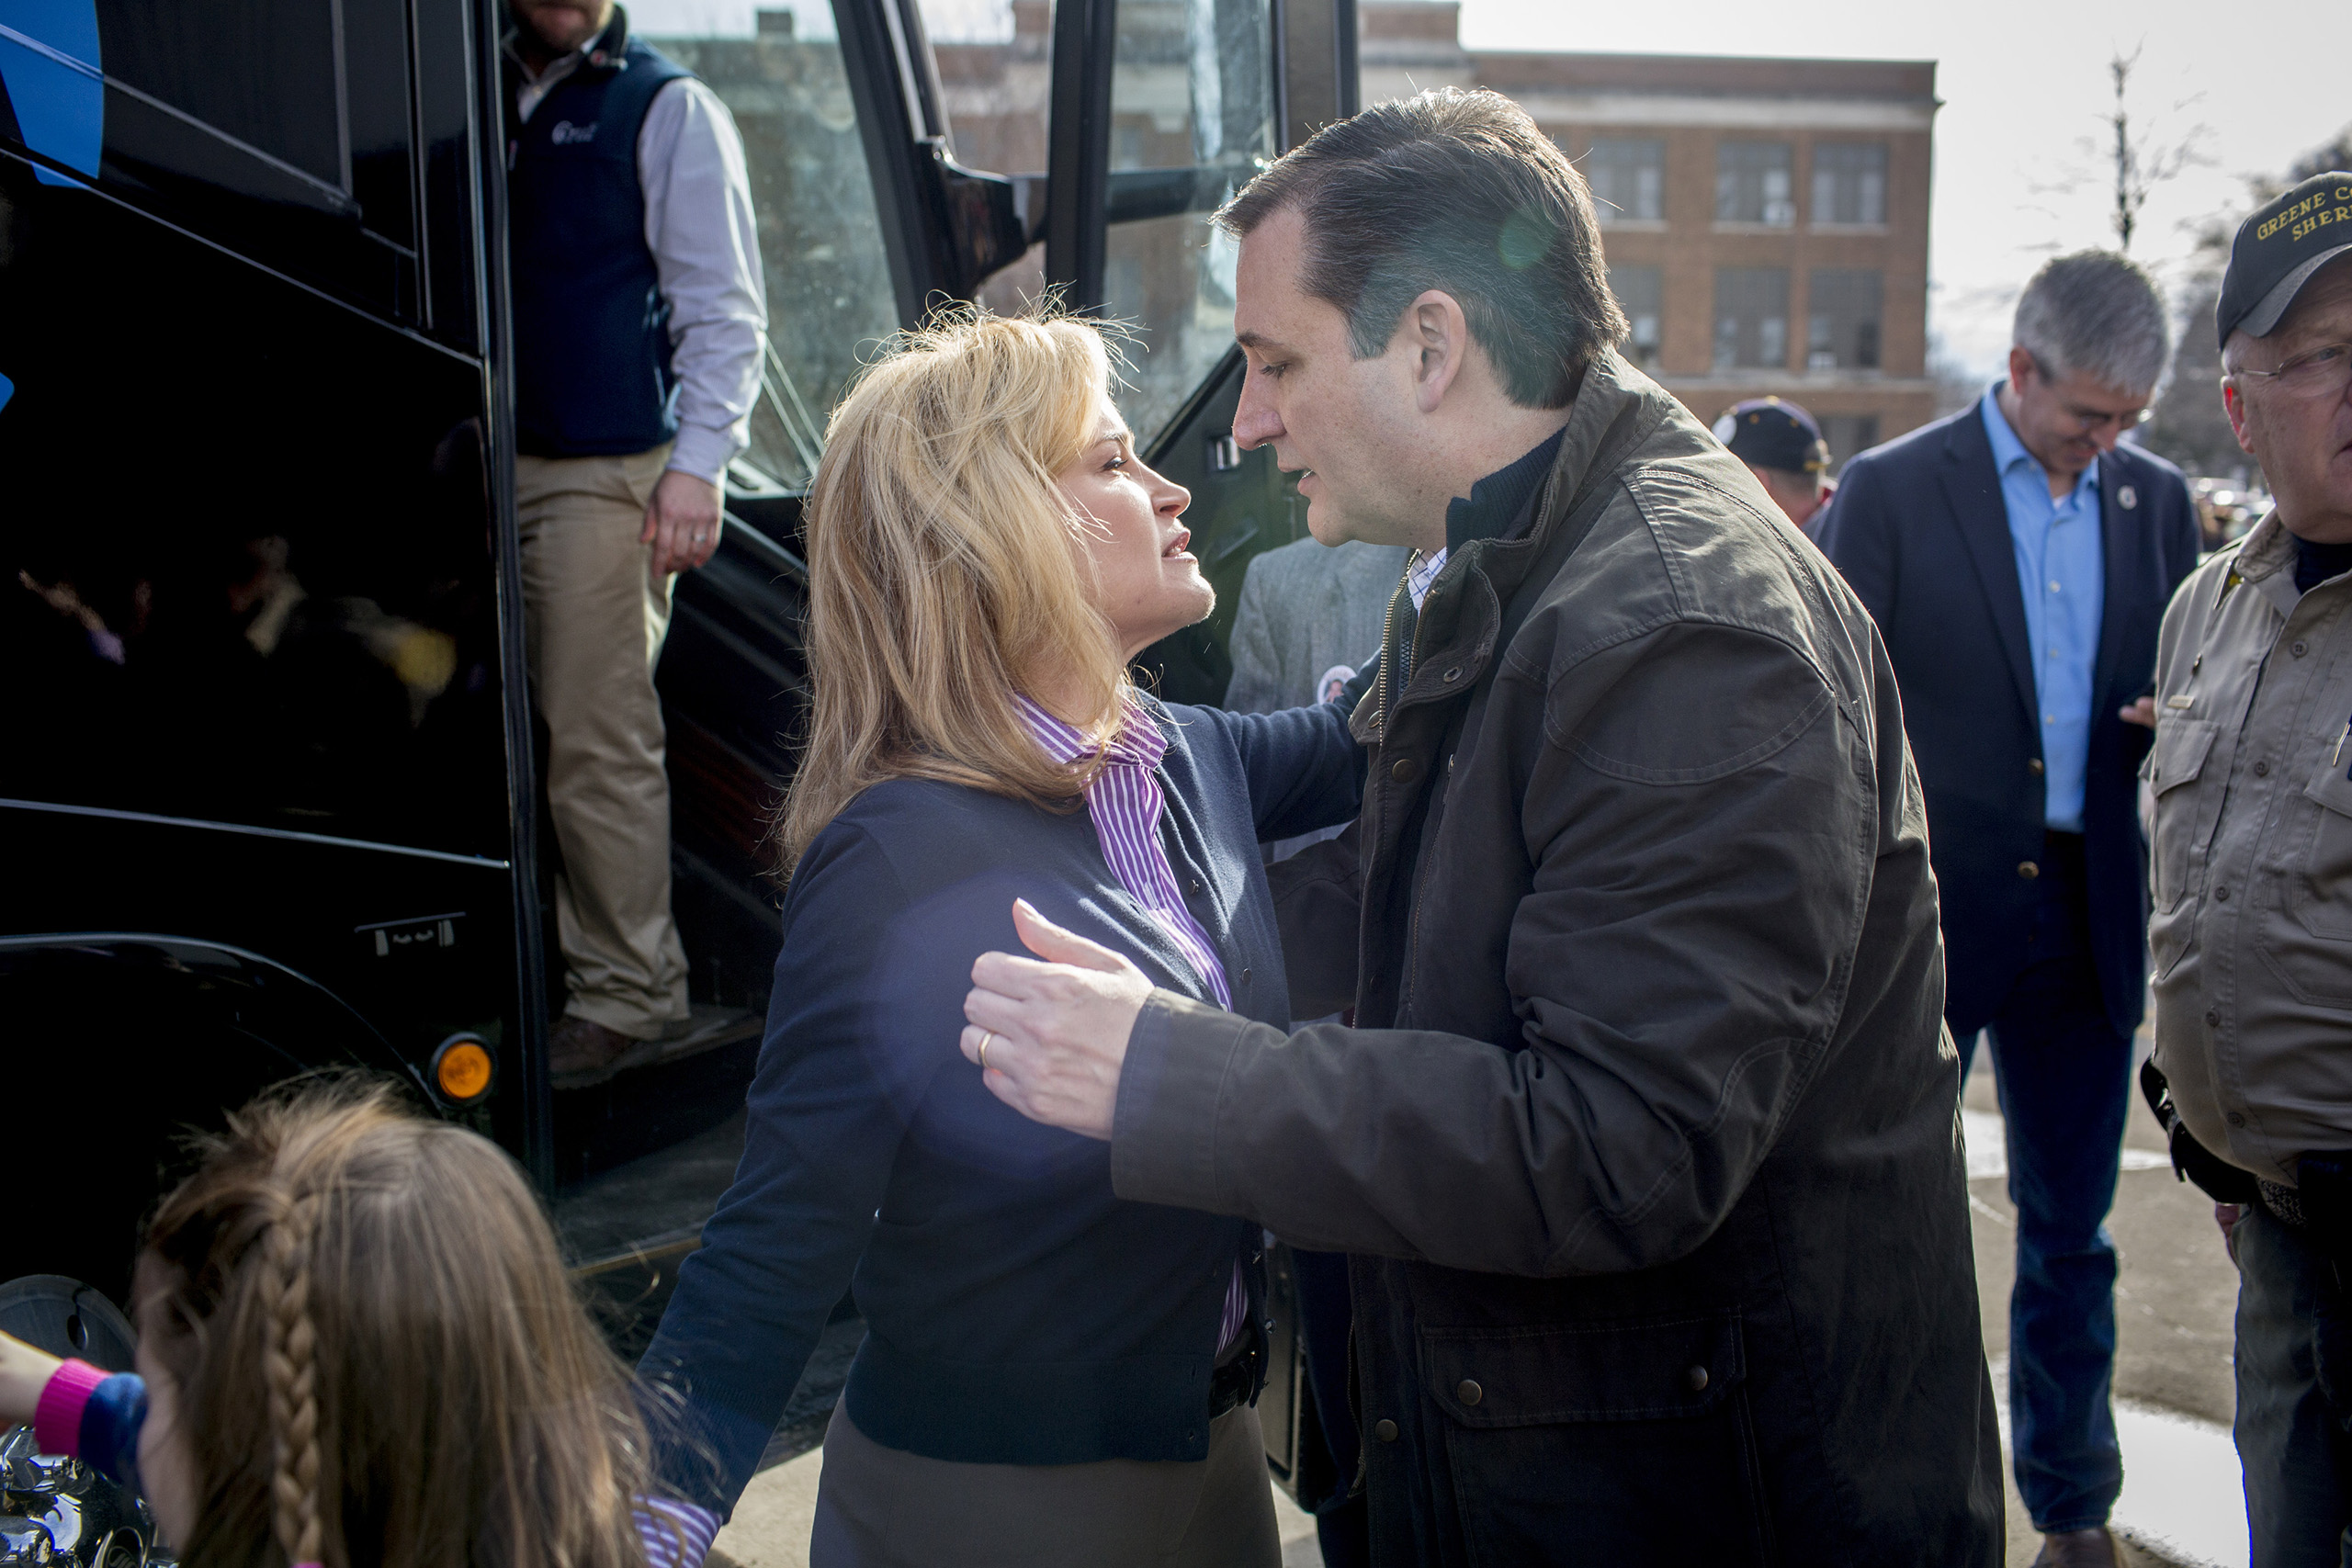 Ted Cruz embraces his wife before boarding the campaign bus at a stop at Greene County Community Center in Jefferson, Iowa, on Feb. 1, 2016.